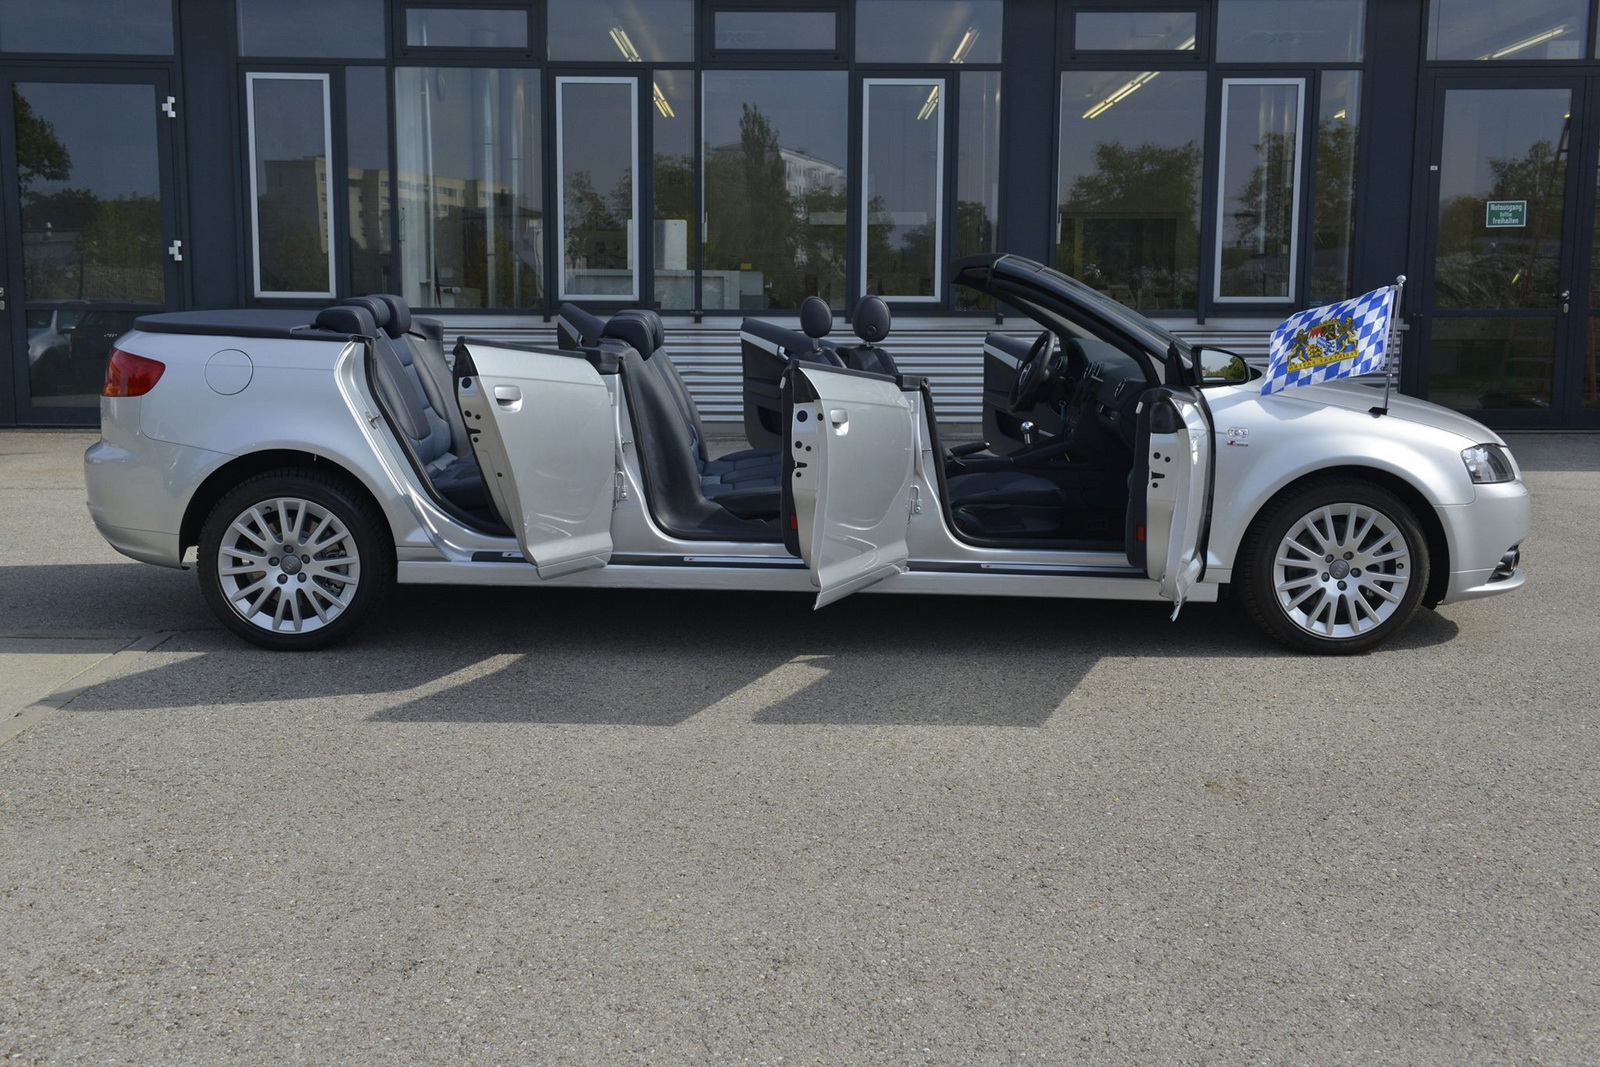 The Audi A3 Cabriolet Xxl Gets Six Doors And Eight Seats